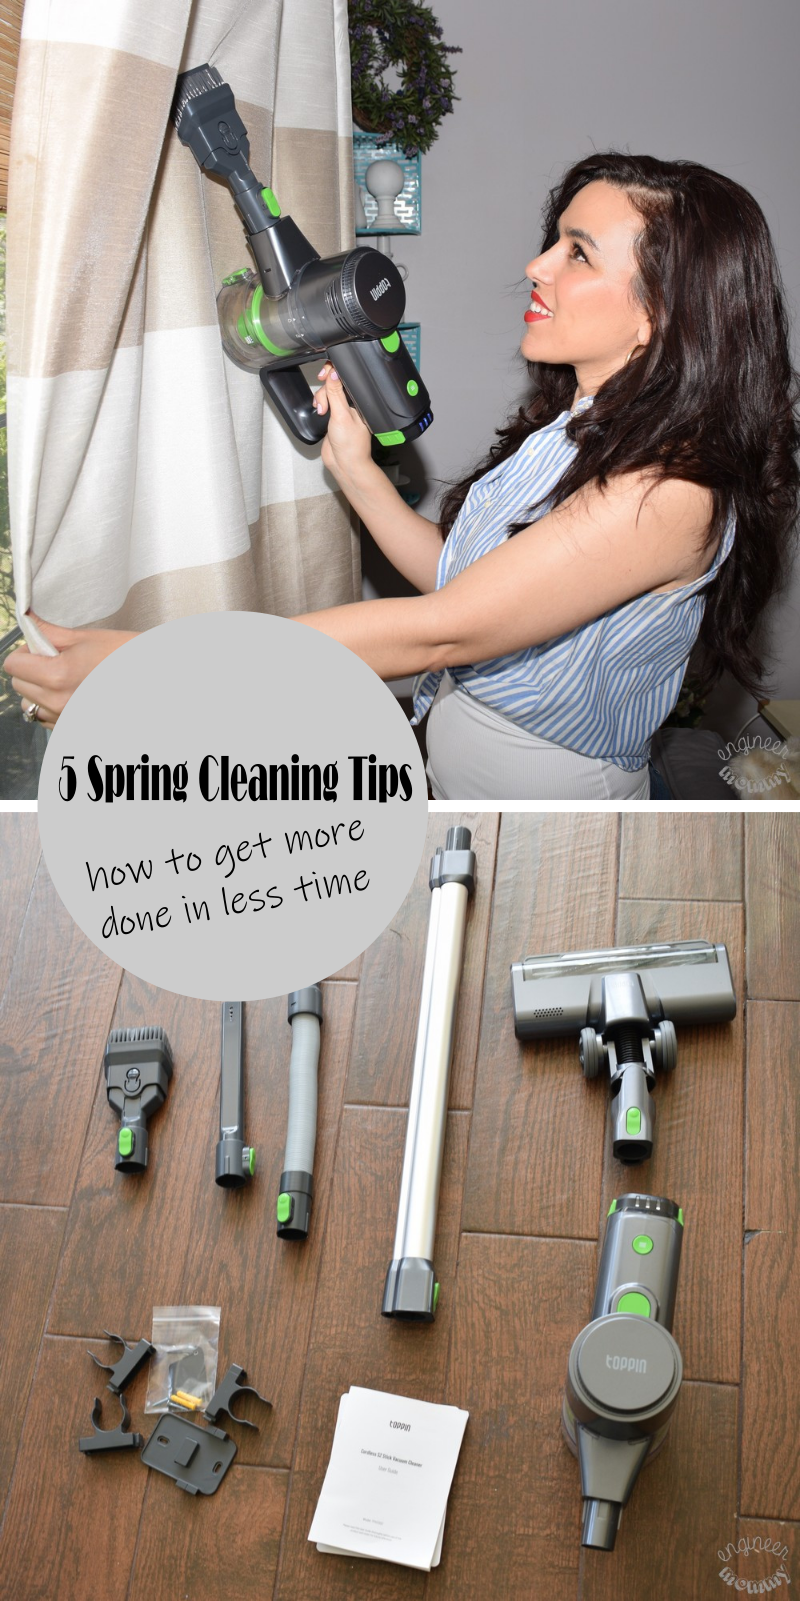 5 Spring Cleaning Tips to Get More Done in Less Time